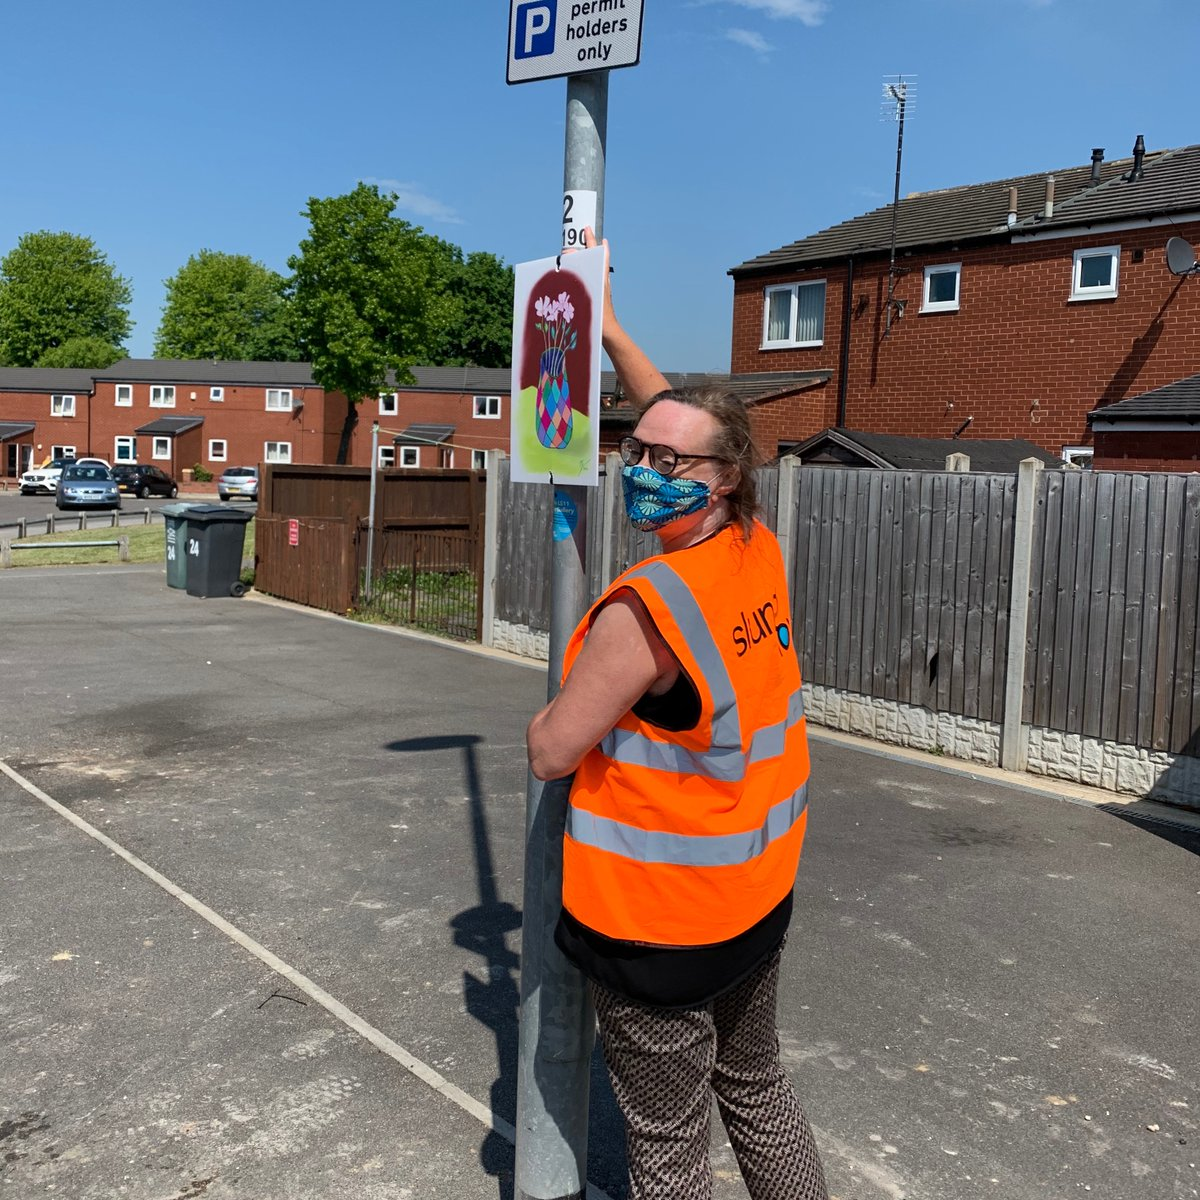 Mega thanks to our #LS11ArtGallery volunteers/curators/lovelies @DrKMcK & @malcij who have been whizzing all over Beeston & Holbeck installing our lamppost gallery. Thanks for making our streets so purdy, you two - you are this weeks Holbeck Heroes🖼️🥰